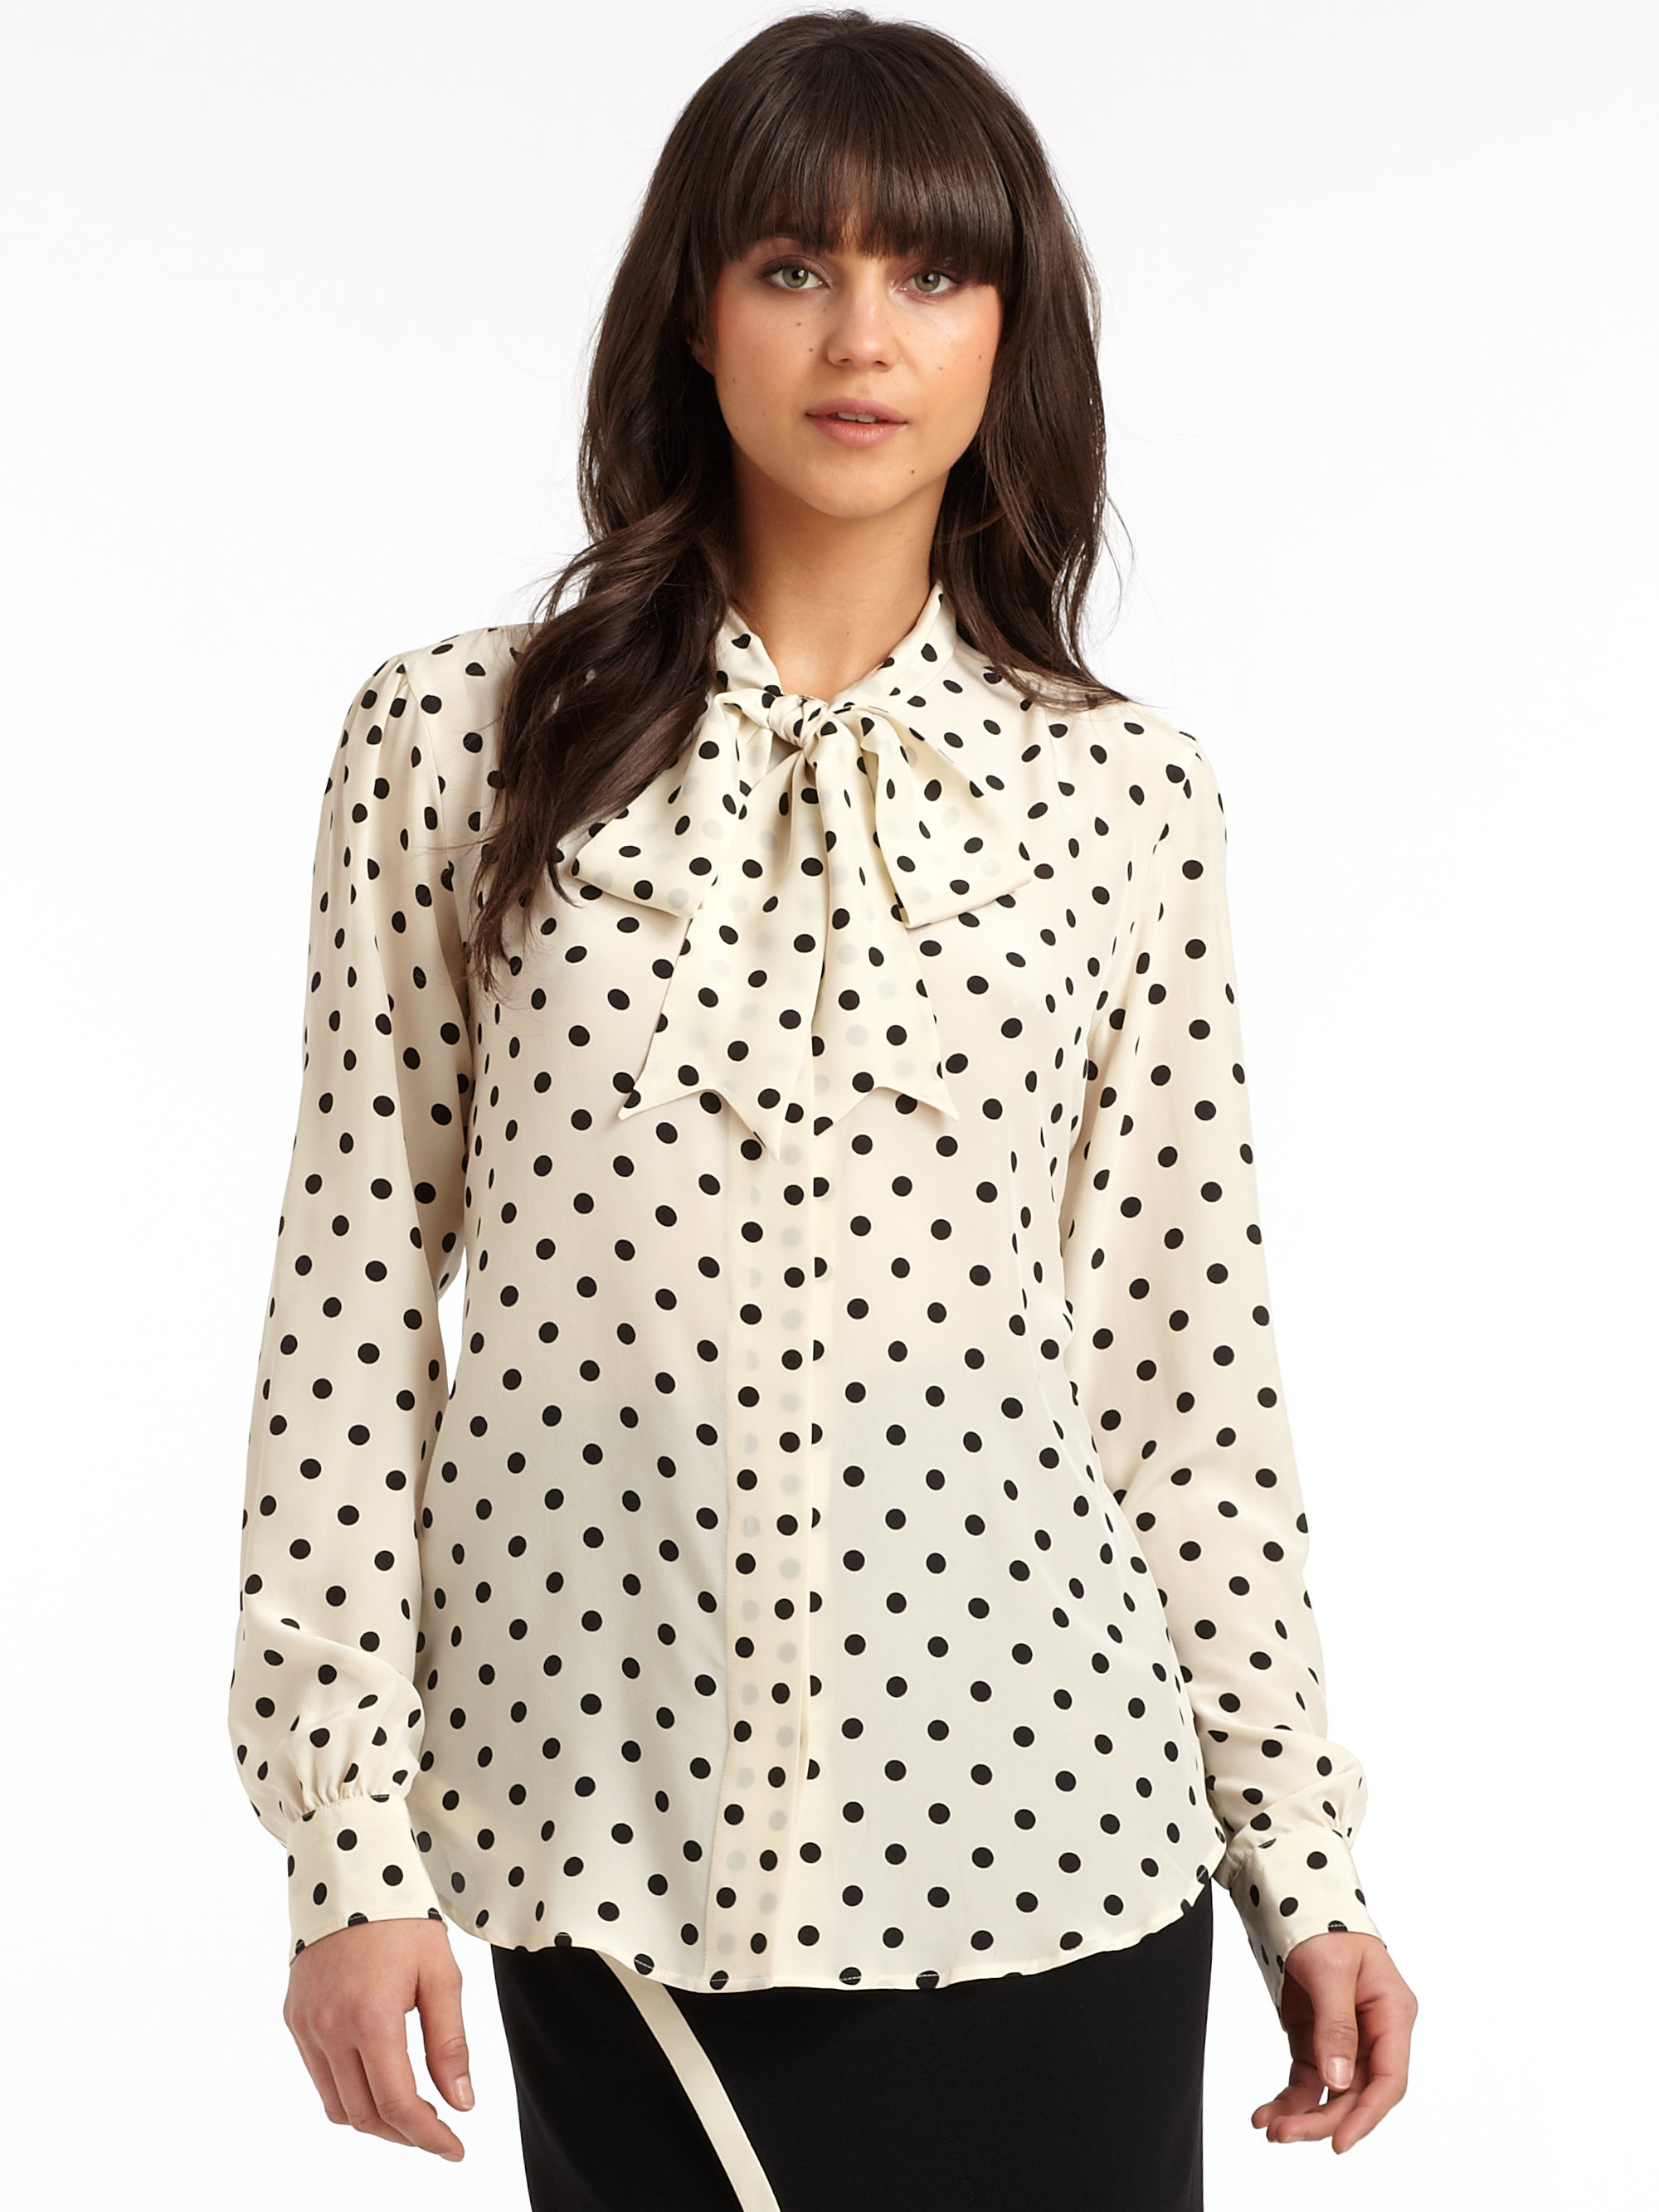 Magnifiek Lyst - Moschino Silk Polka Dot Tie Neck Blouse in Black &IJ56